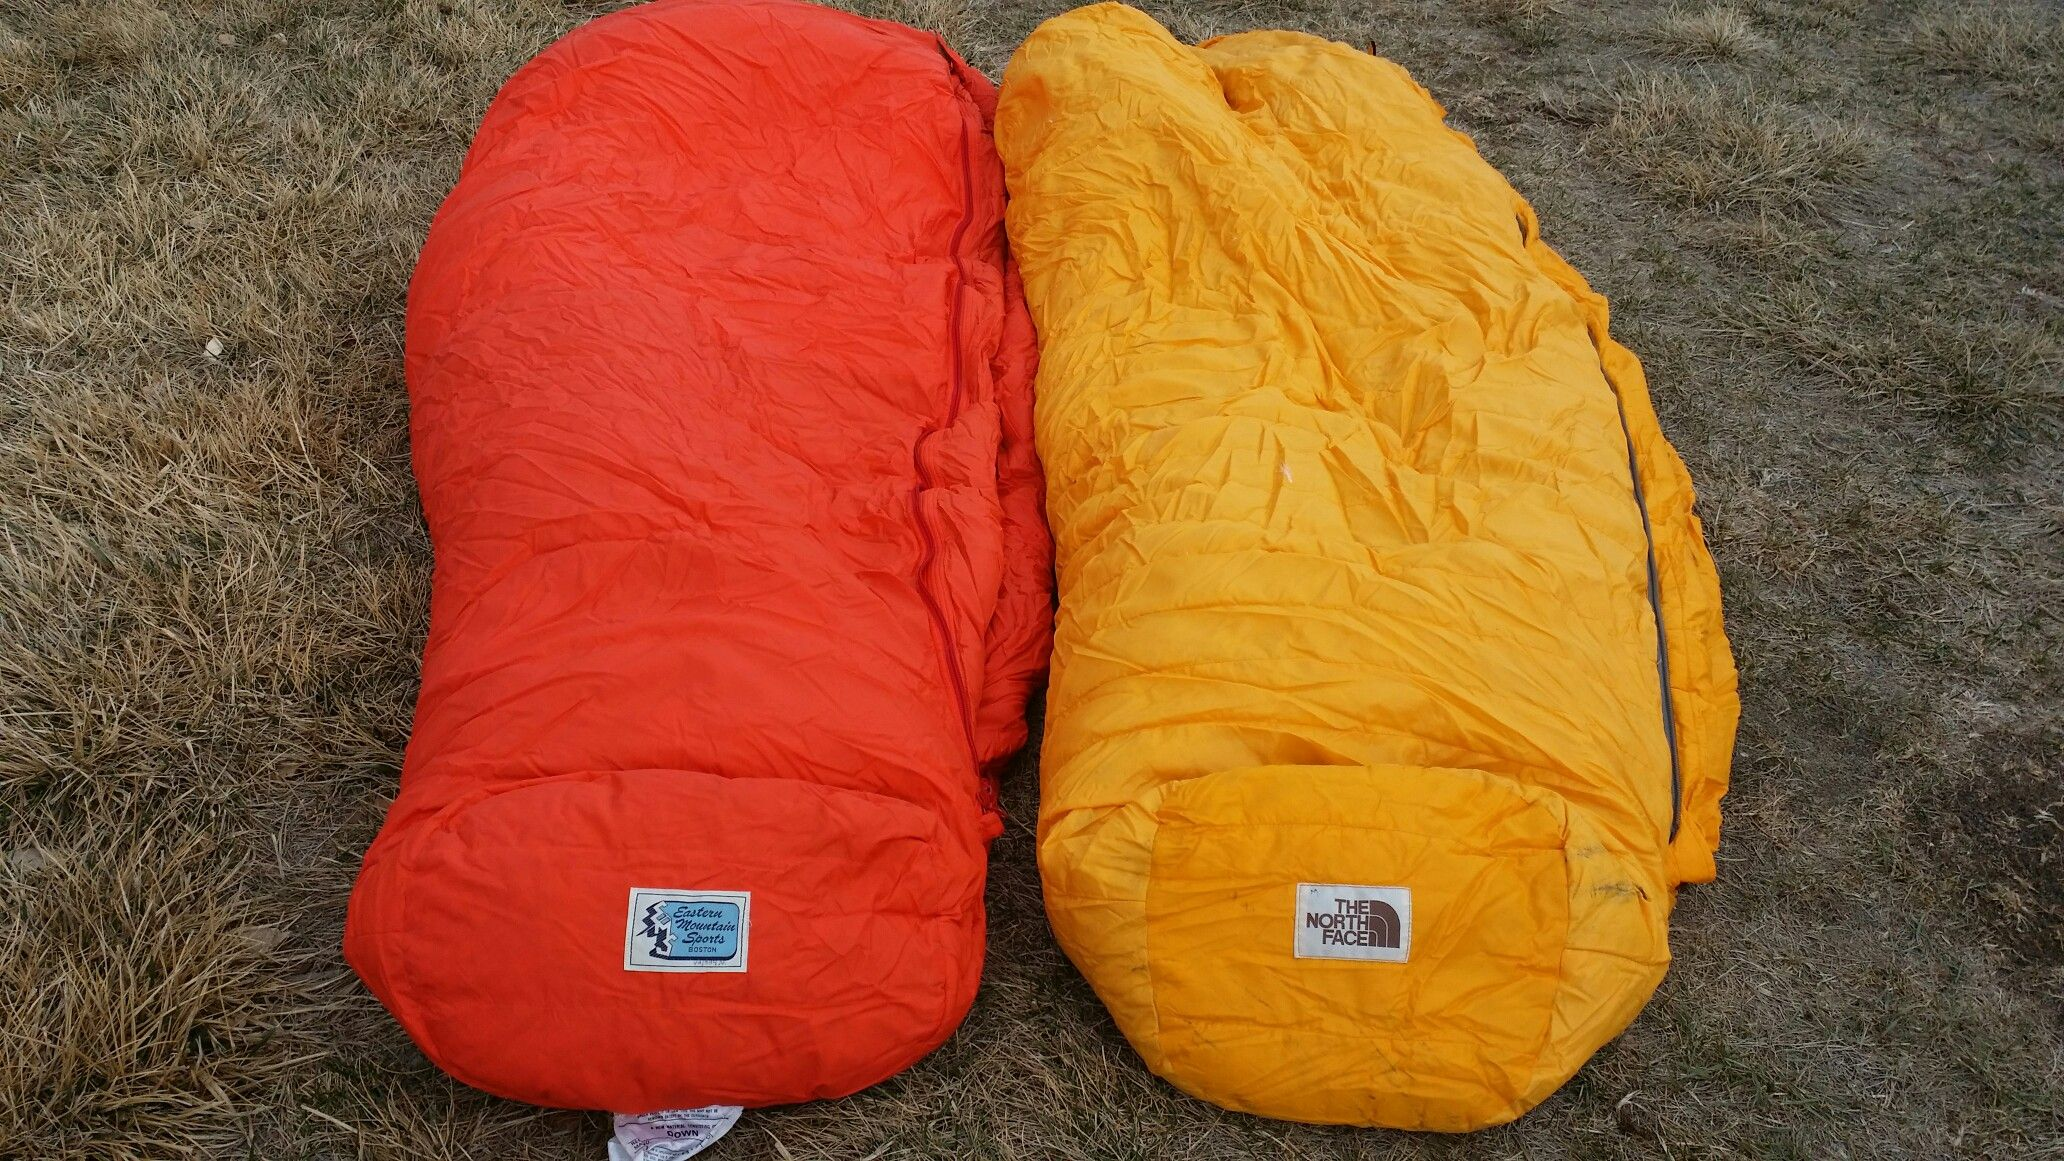 There Was A Time I Actually Used Real Sleeping Bags Tents And Gasoline Stoves My Old Ems Down Bag Even